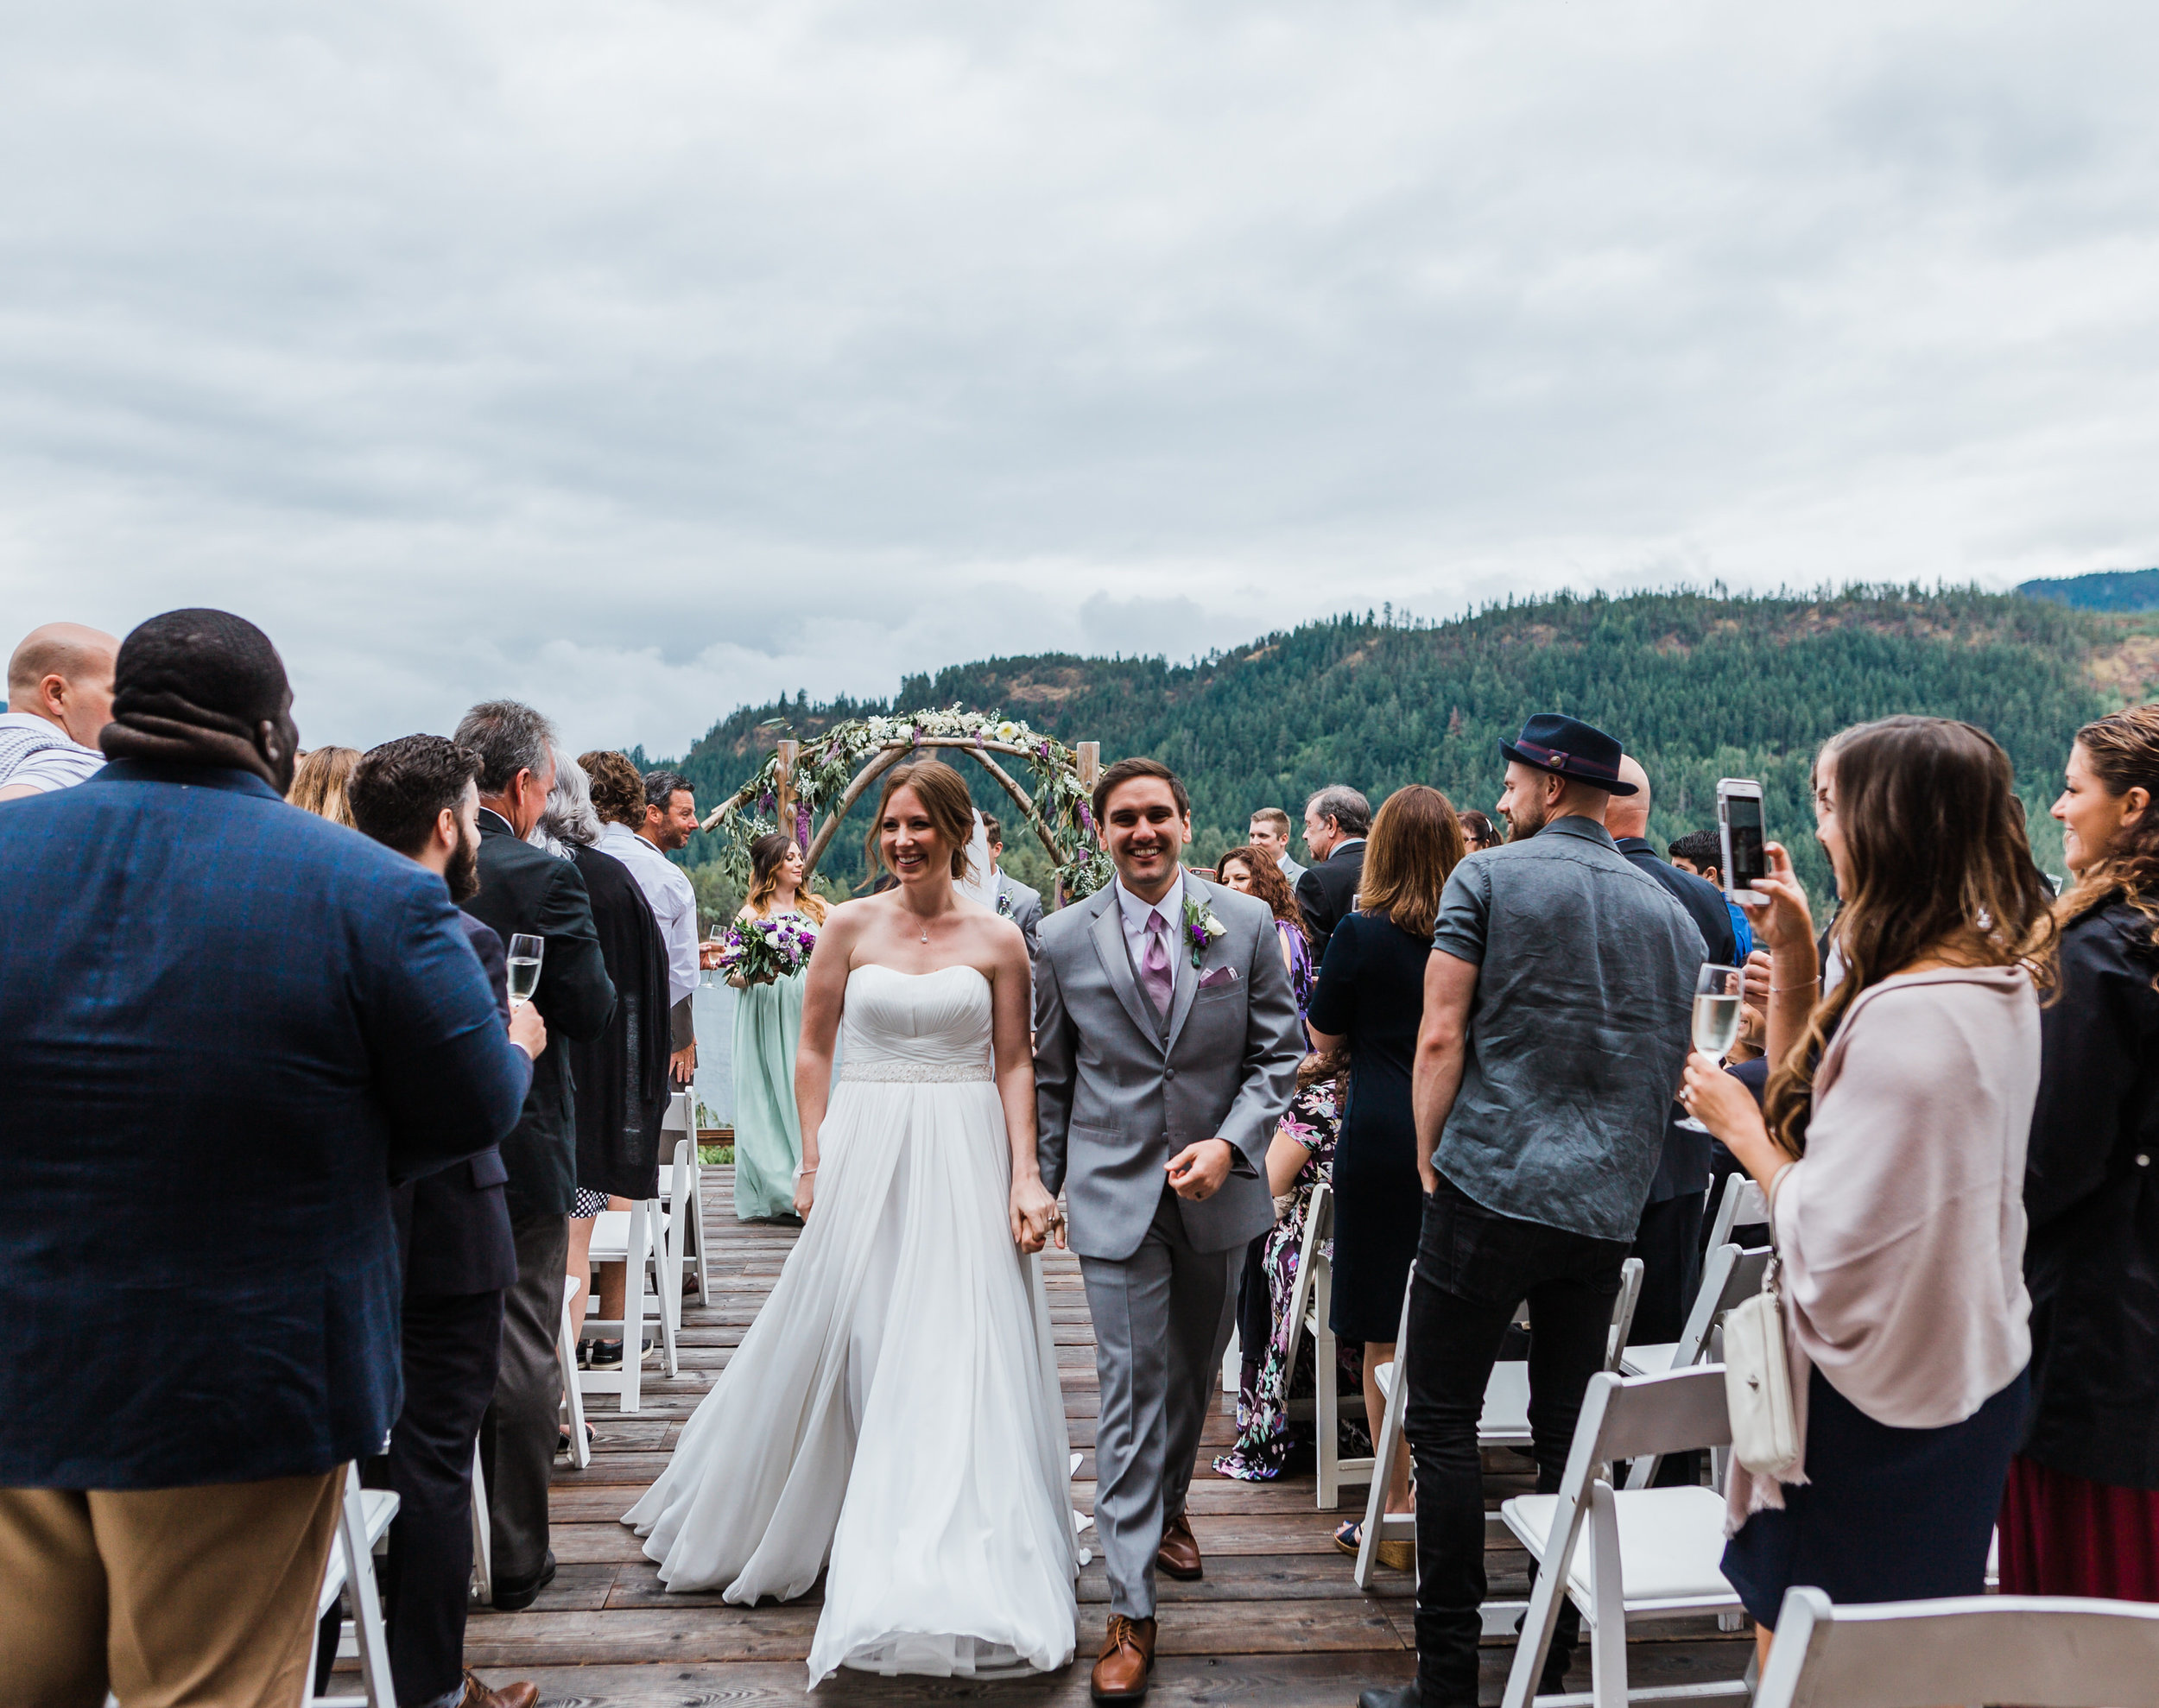 West Coast Wilderness Lodge Wedding Photos - Vancouver Wedding Photographer & Videographer - Sunshine Coast Wedding Photos - Sunshine Coast Wedding Photographer - Jennifer Picard Photography - IMG_3016.jpg